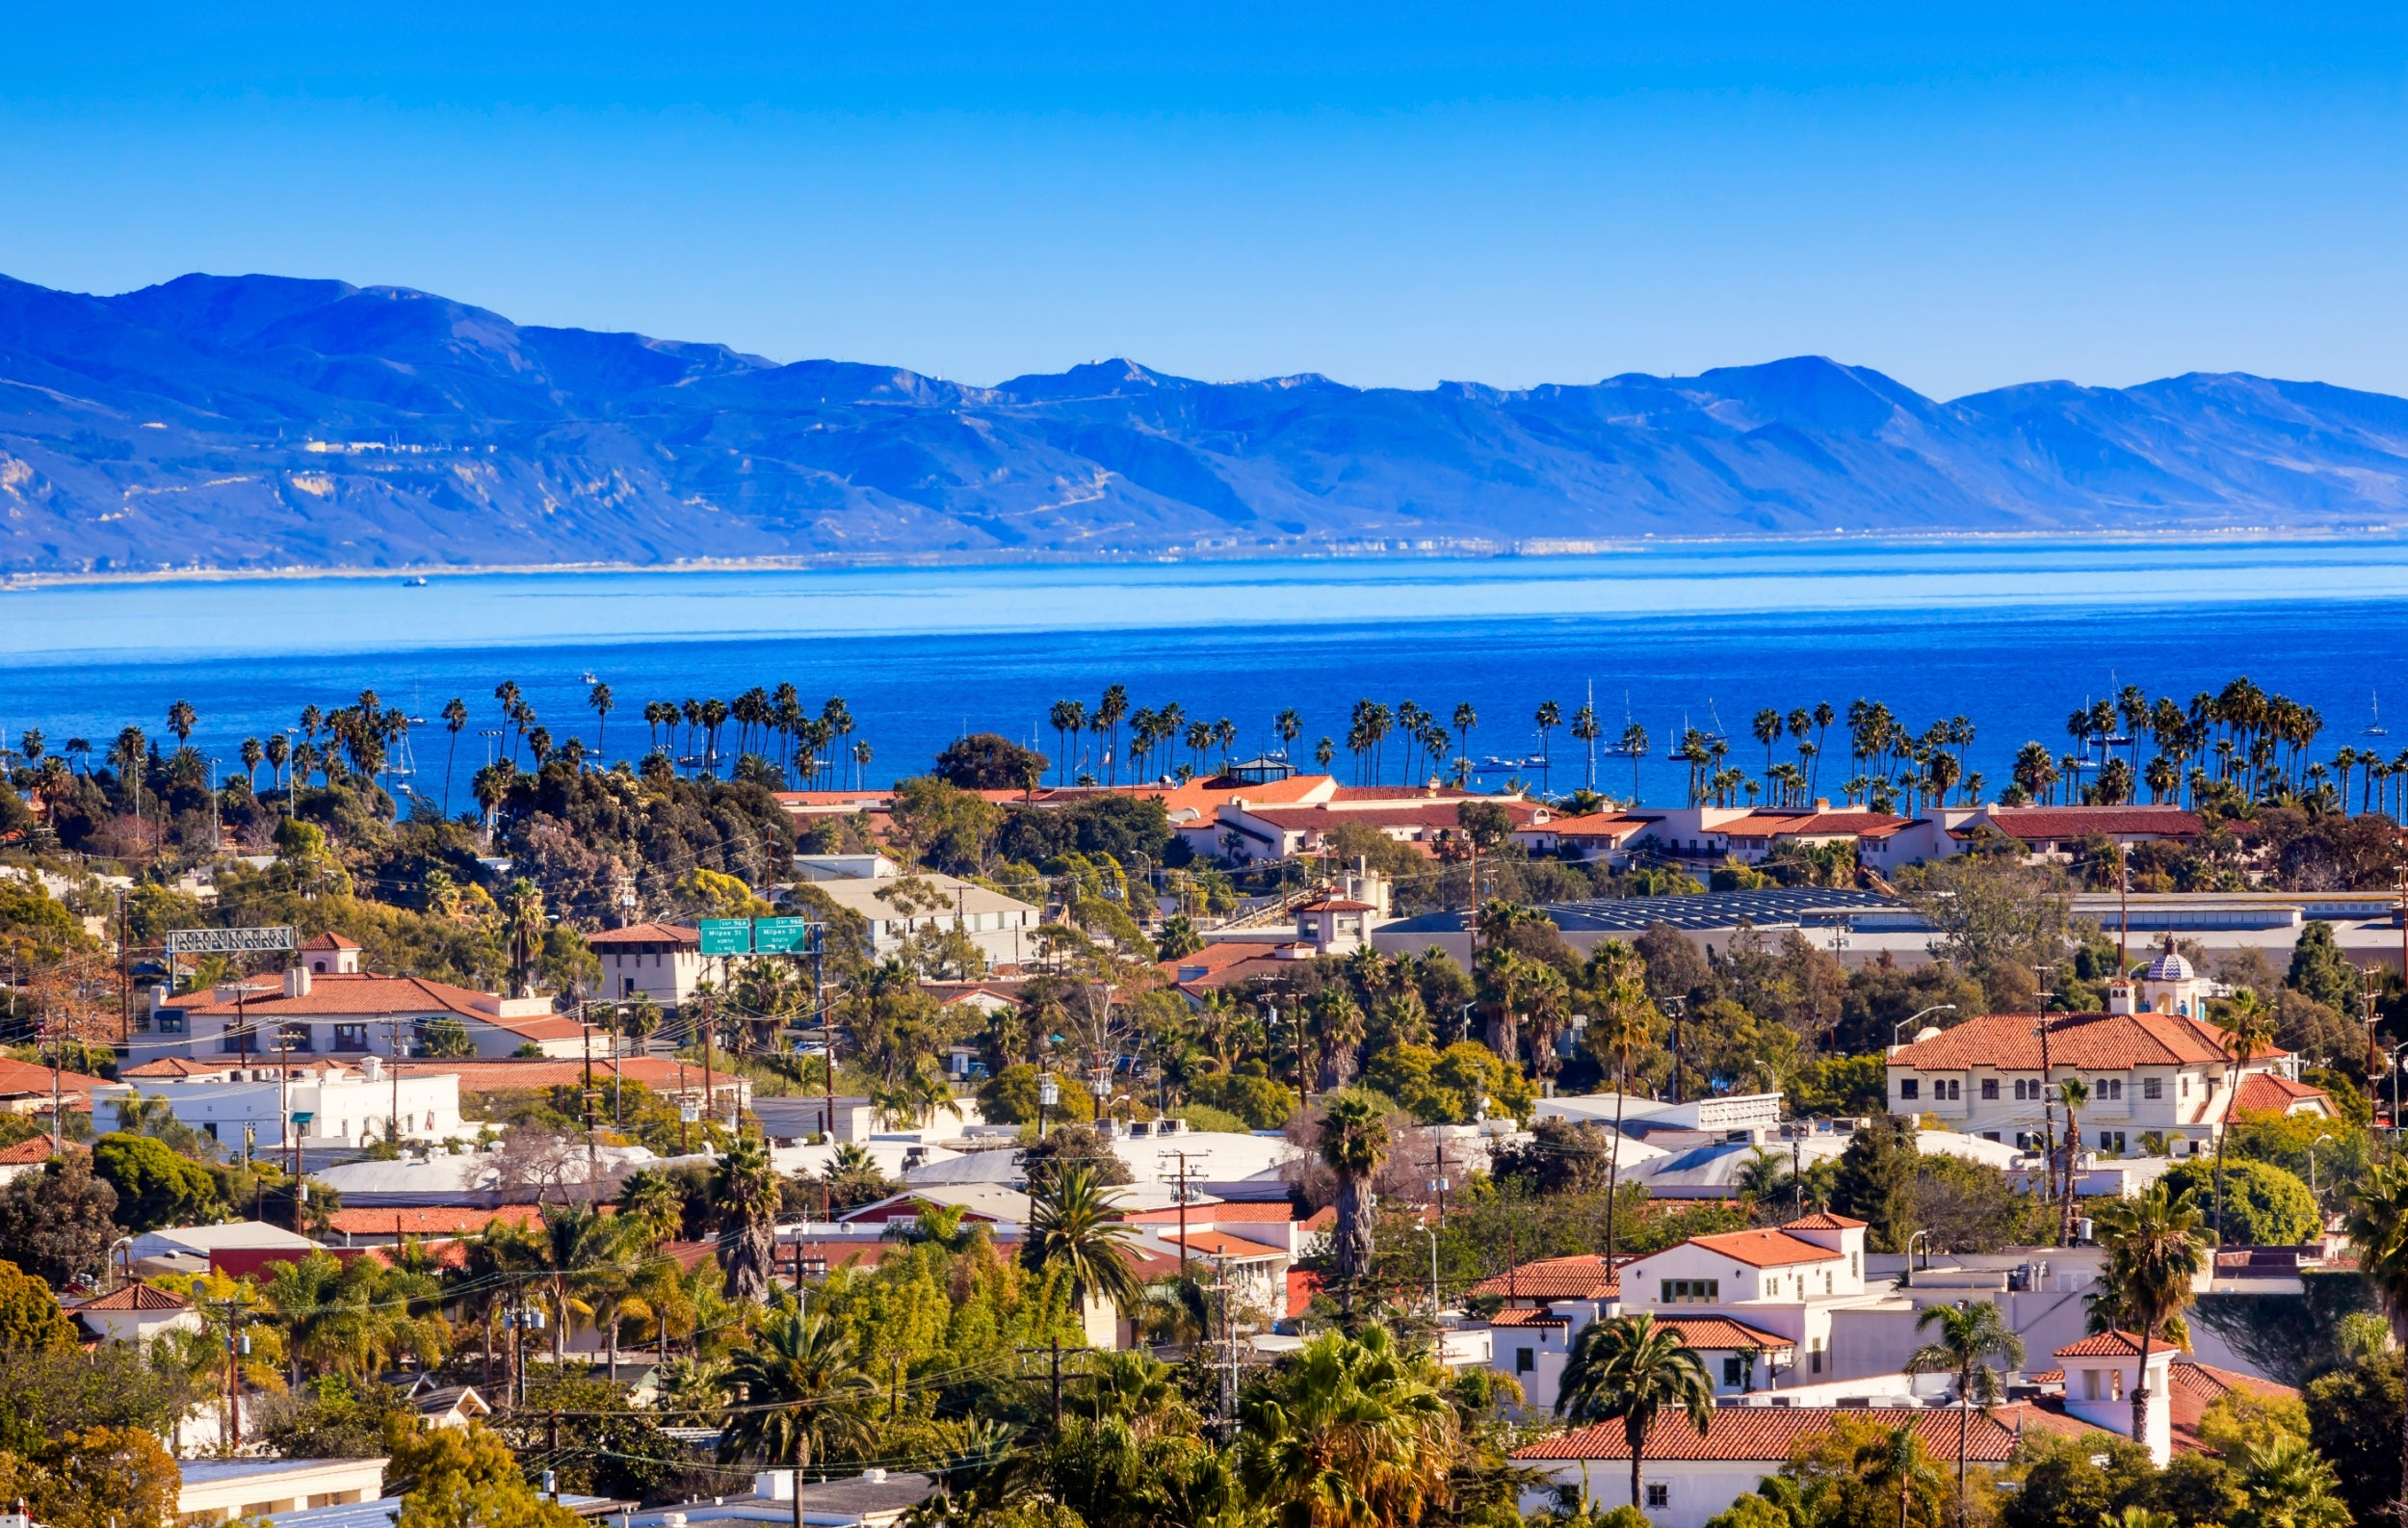 Santa Barbara, California: The 'American Riviera' becomes a hip food and wine haven